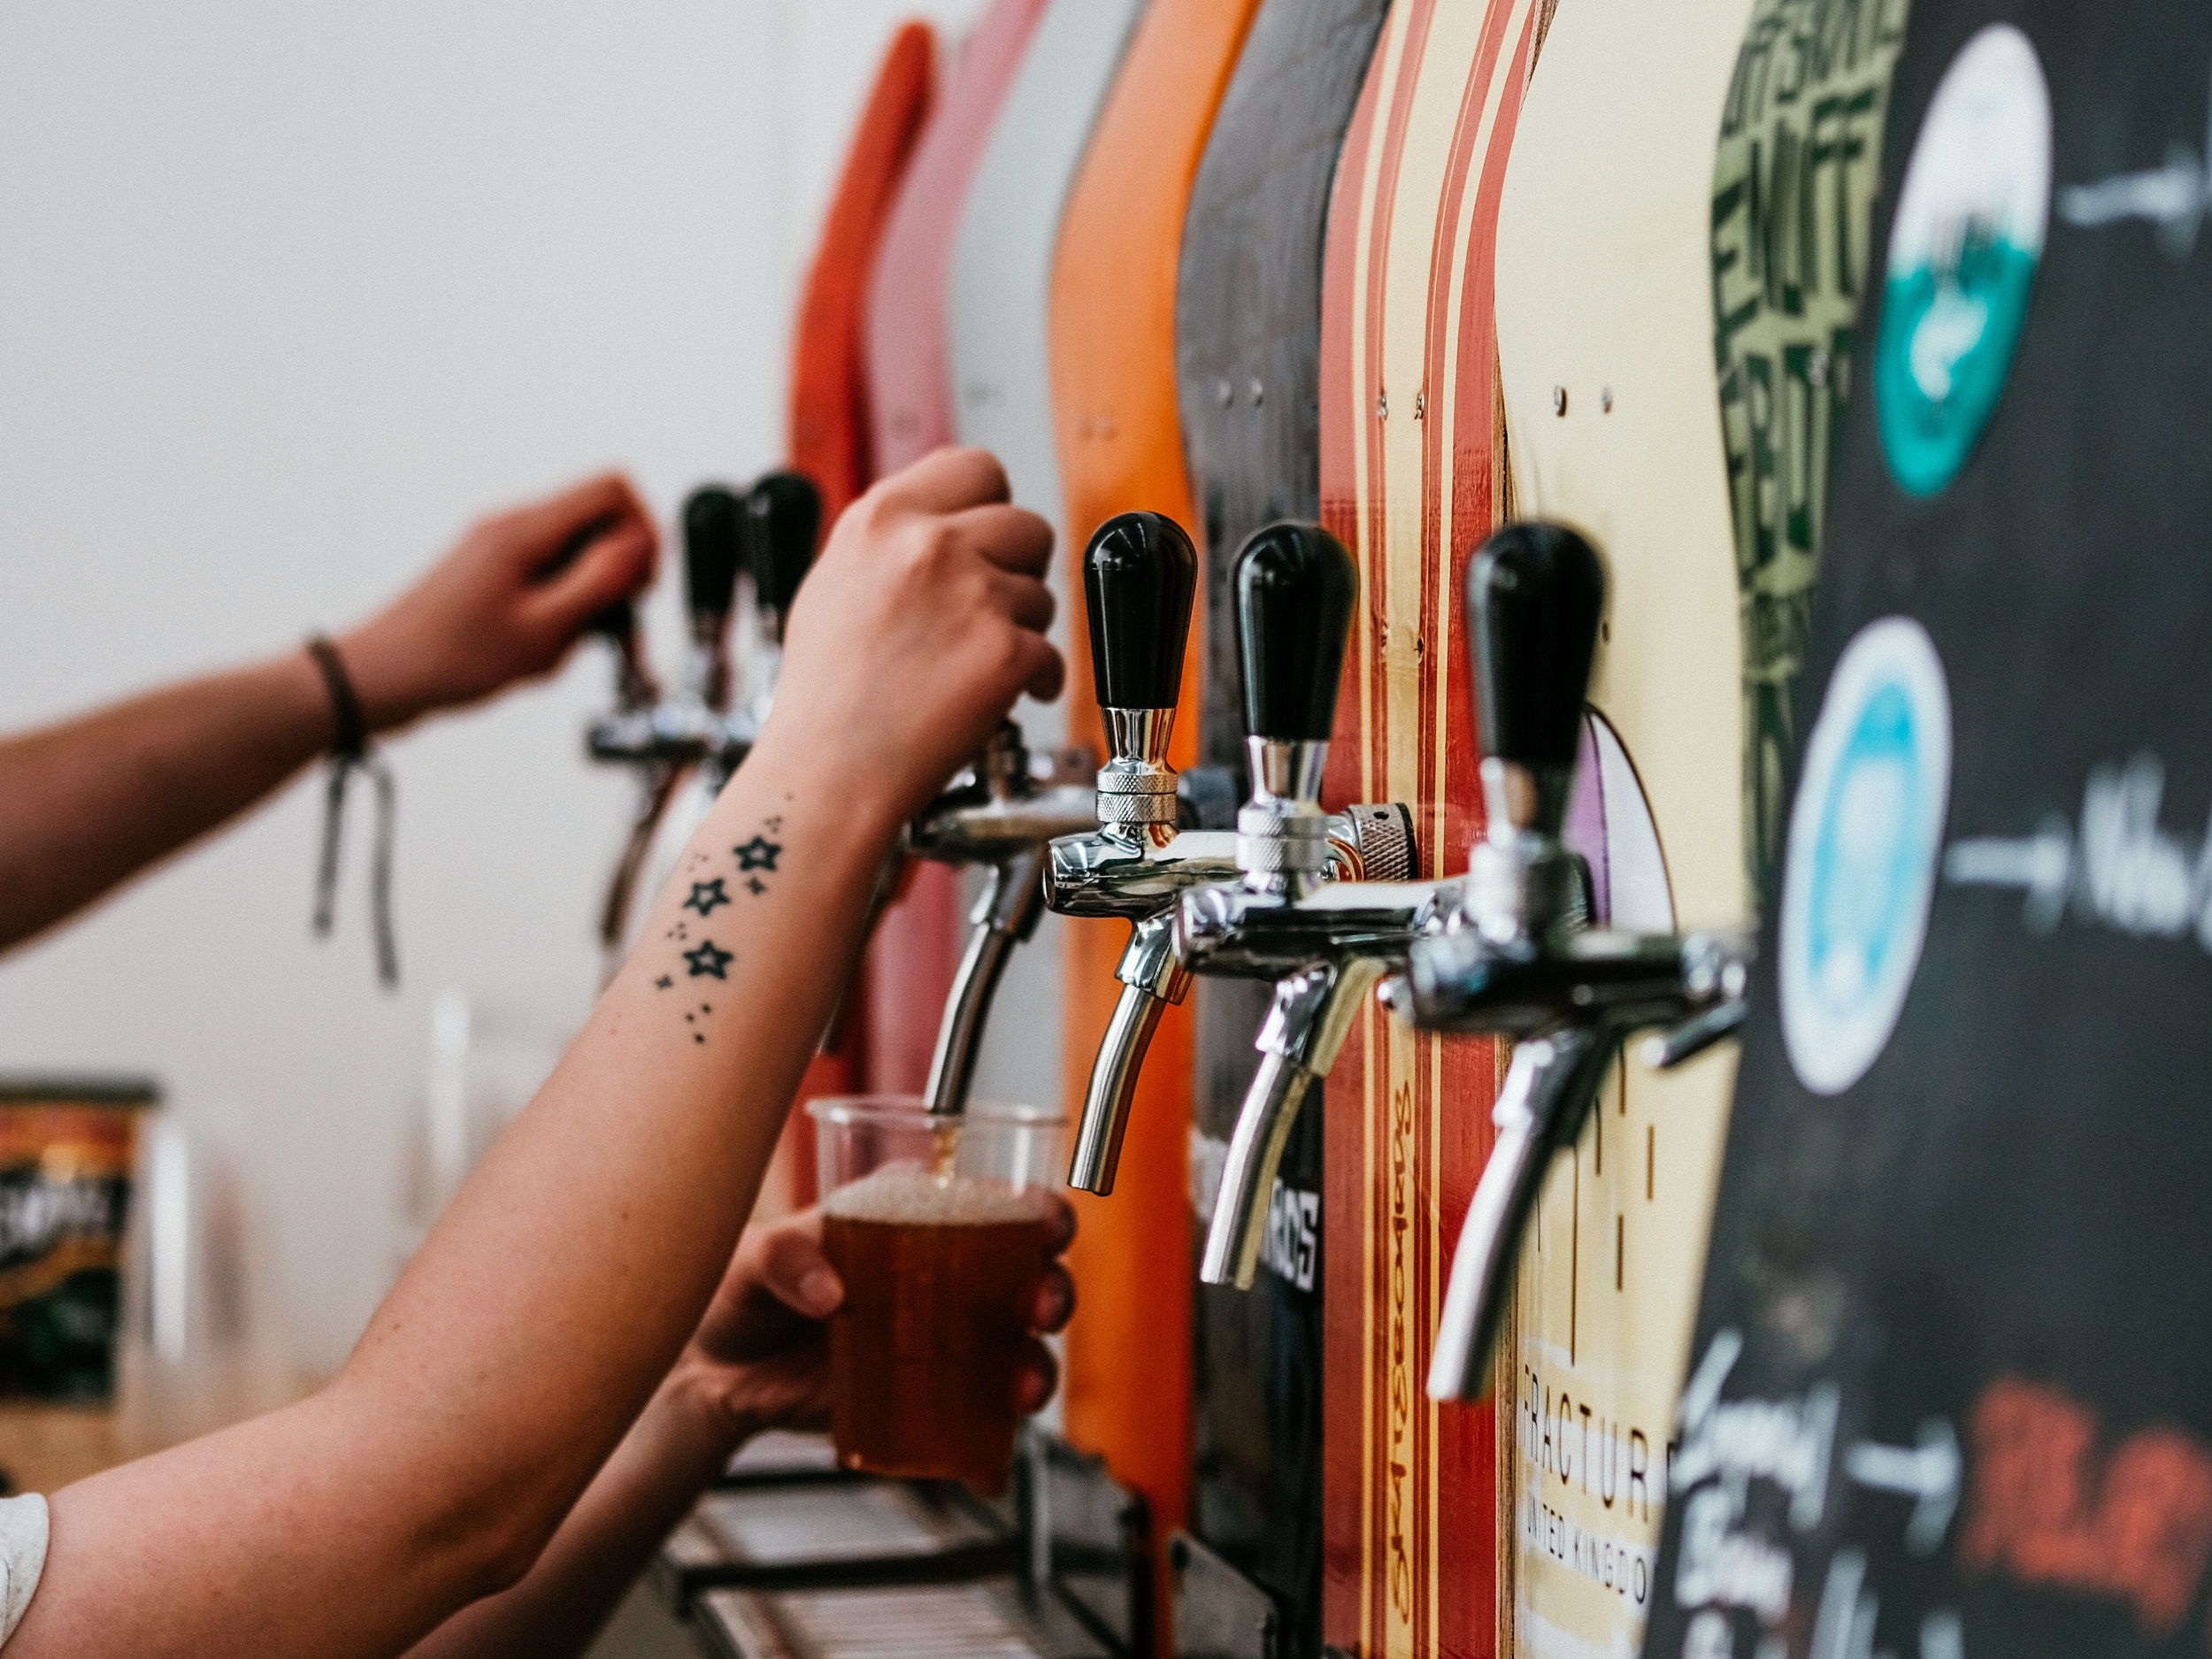 North Austin Beer Tour - Celis BreweryCircle BrewingAustin BeerworksFood trucks available, meal not included$100/person15% gratuity not included.